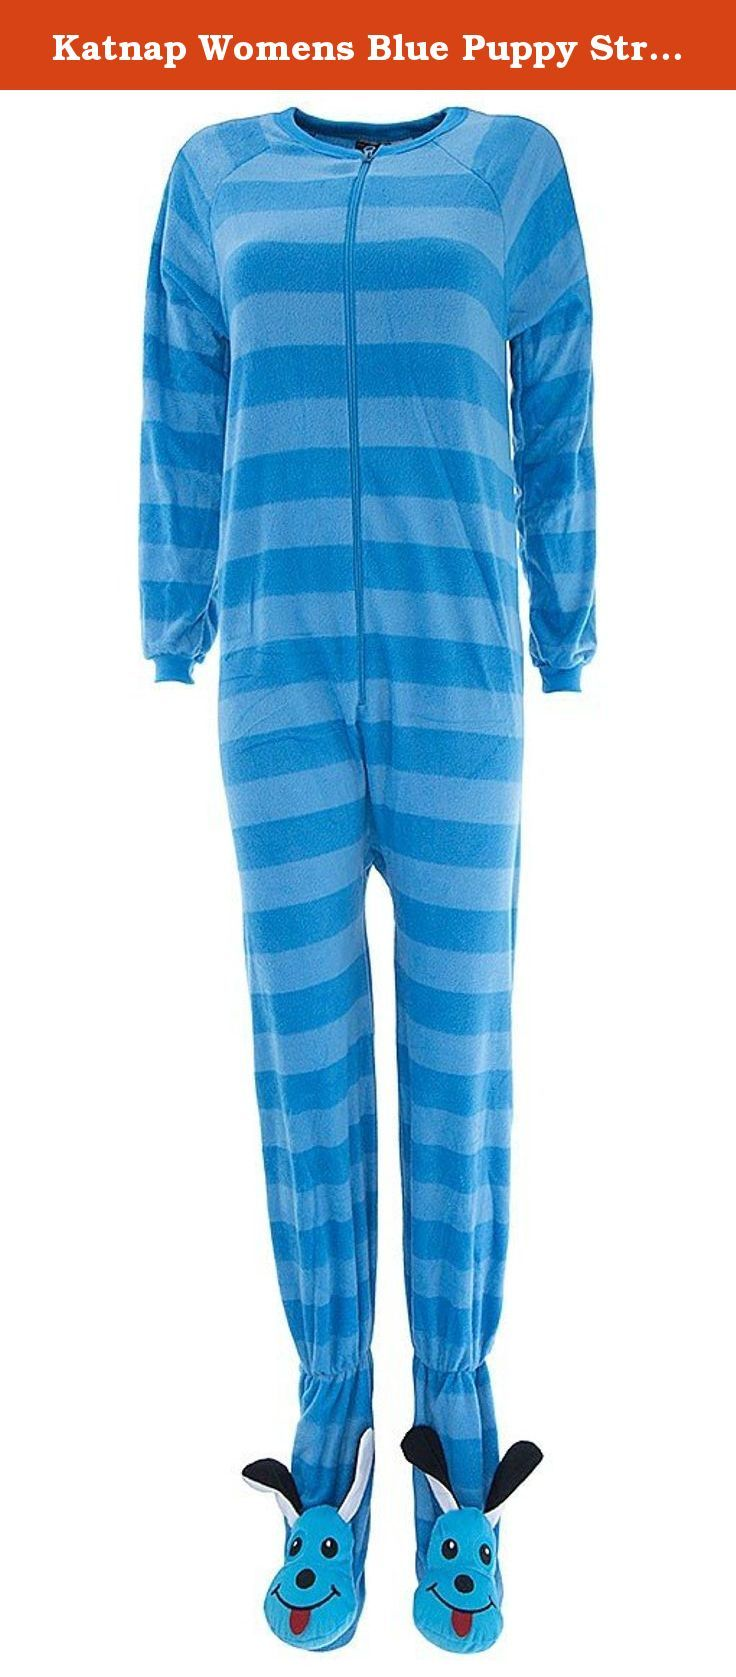 Katnap Womens Blue Puppy Striped Footed Pajamas M. These fleece, footed pajamas are made of warm micro polar fleece. They feature a fun, animal print. The brand is Katnap. They zip up the front. The soles of the feet have a non-skid finish.